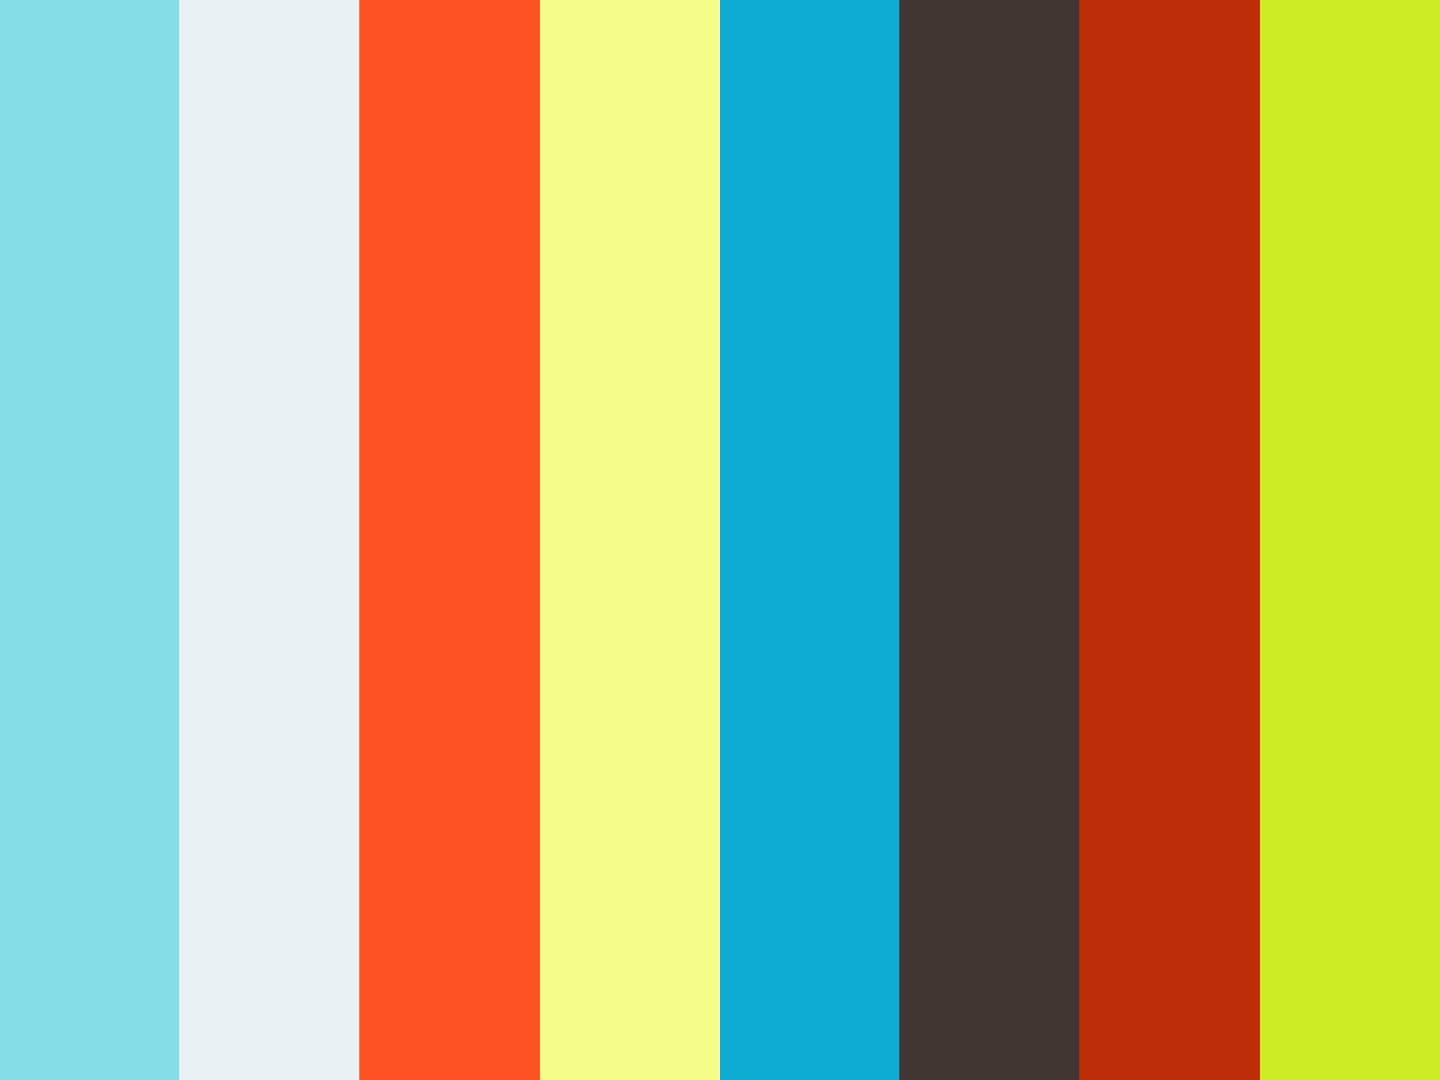 Lyric rapping lyrics : Mr. Lee - Phases of the Moon rap on Vimeo